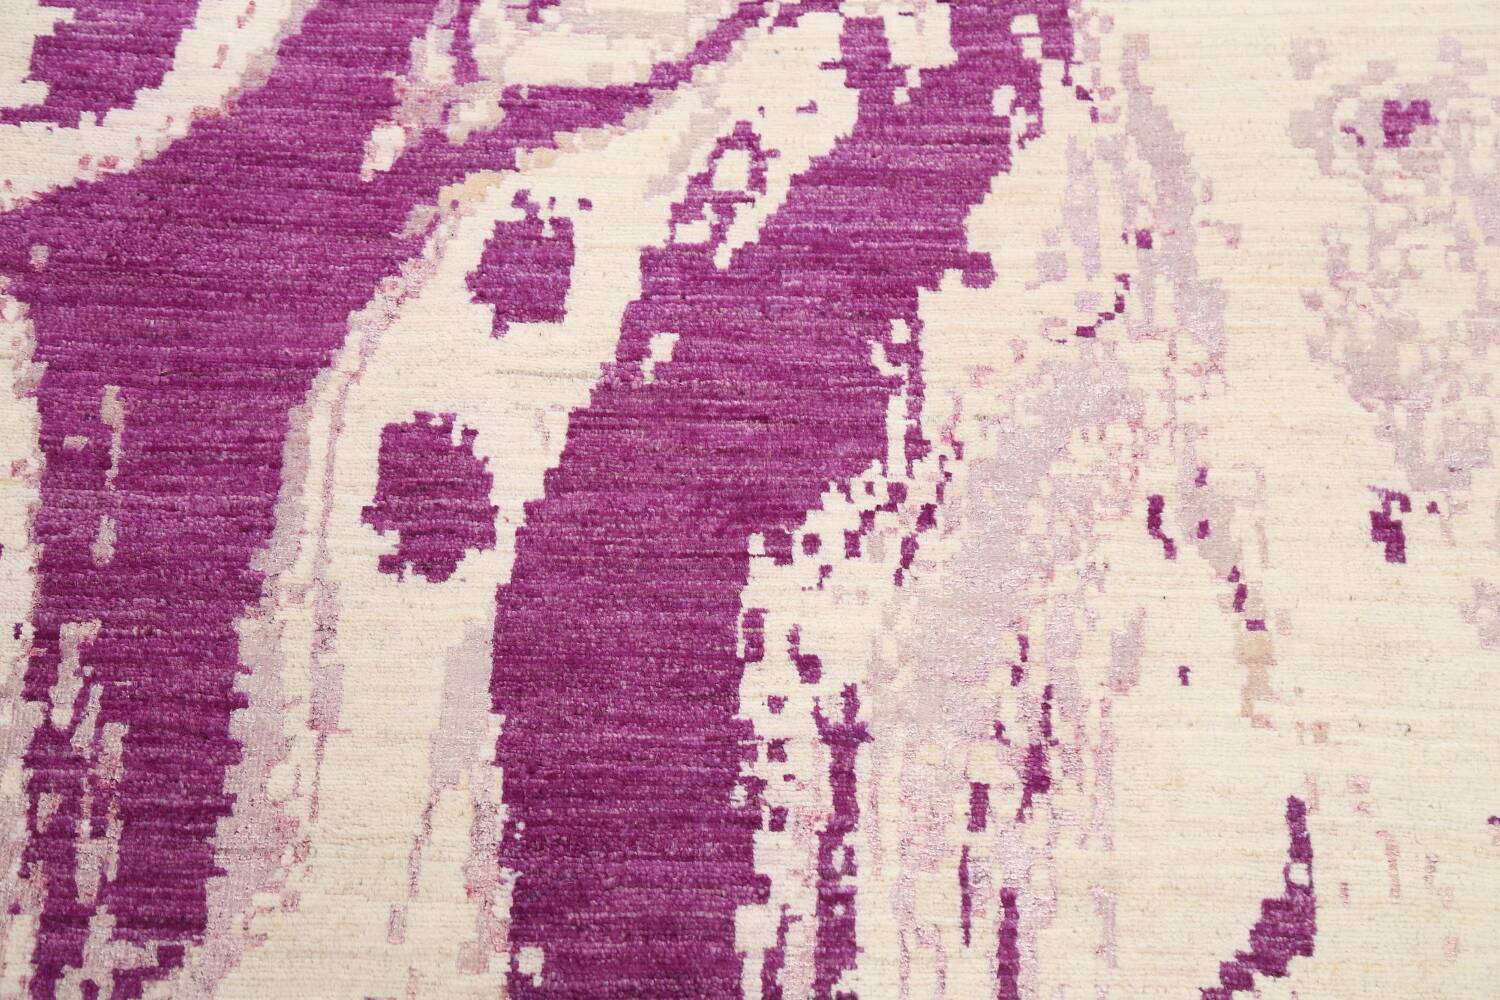 Vegetable Dye Contemporary Abstract Oriental Area Rug 5x6 image 9